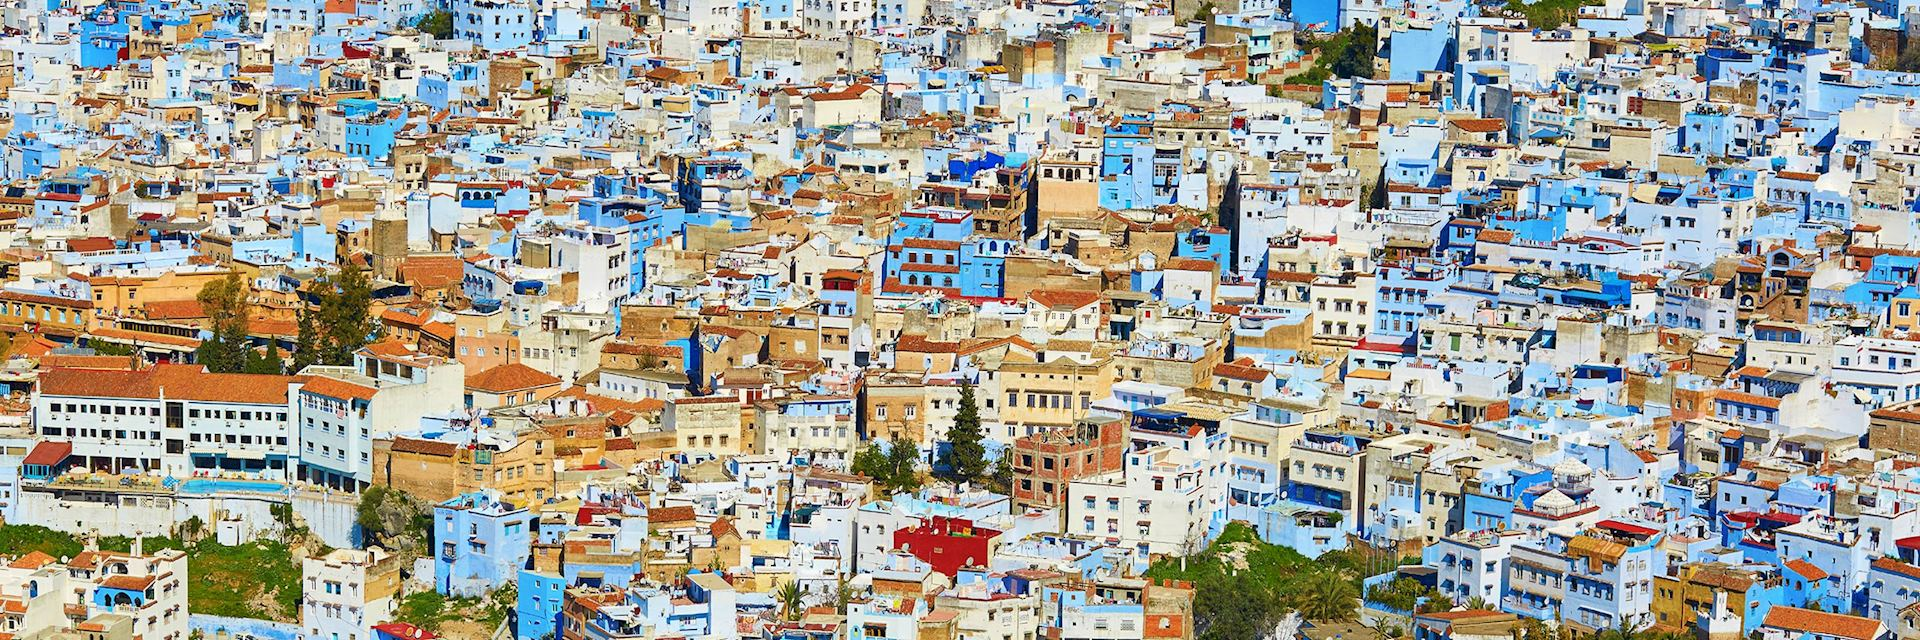 Blue and whitewashed buildings, Chefchaouen